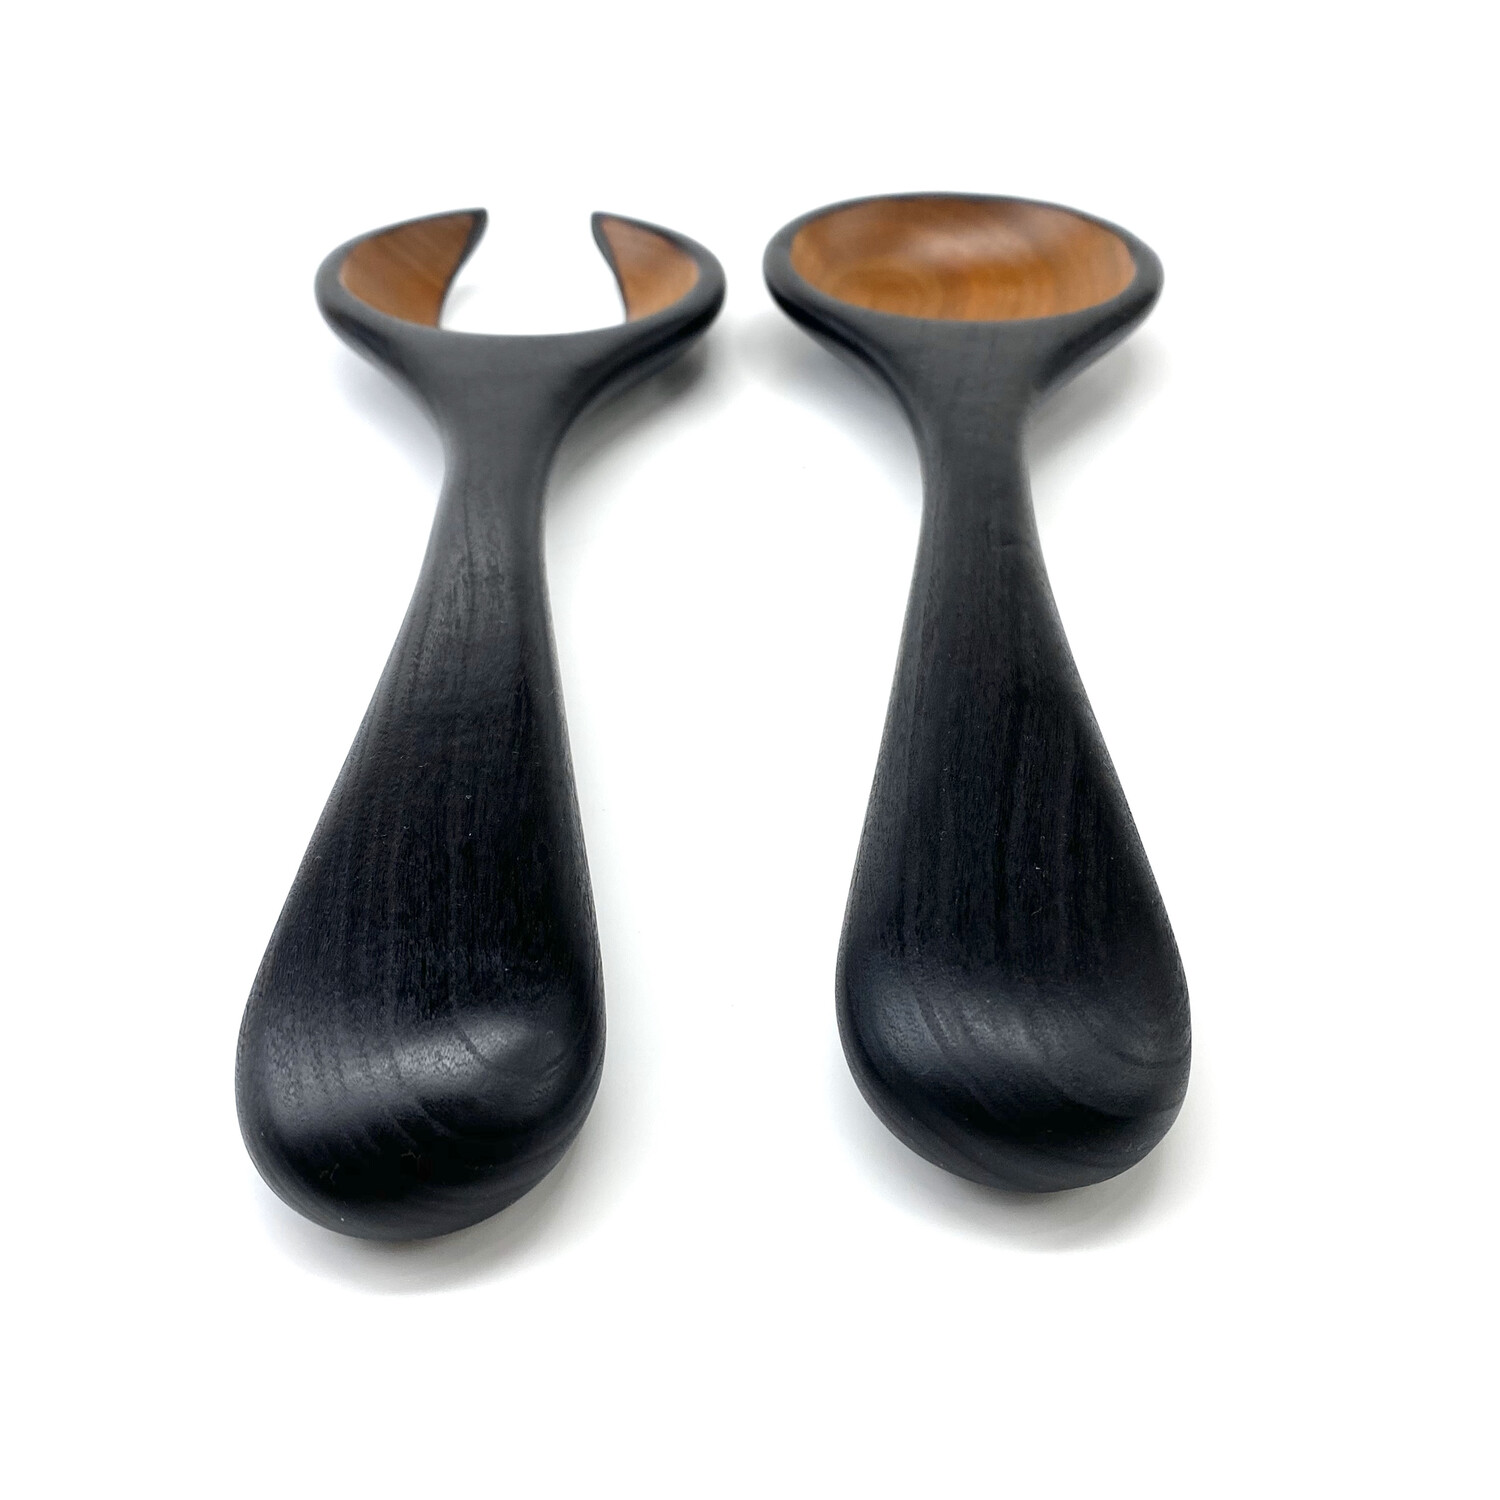 Sculpted Reverse Blackened Cherry Serving Spoons